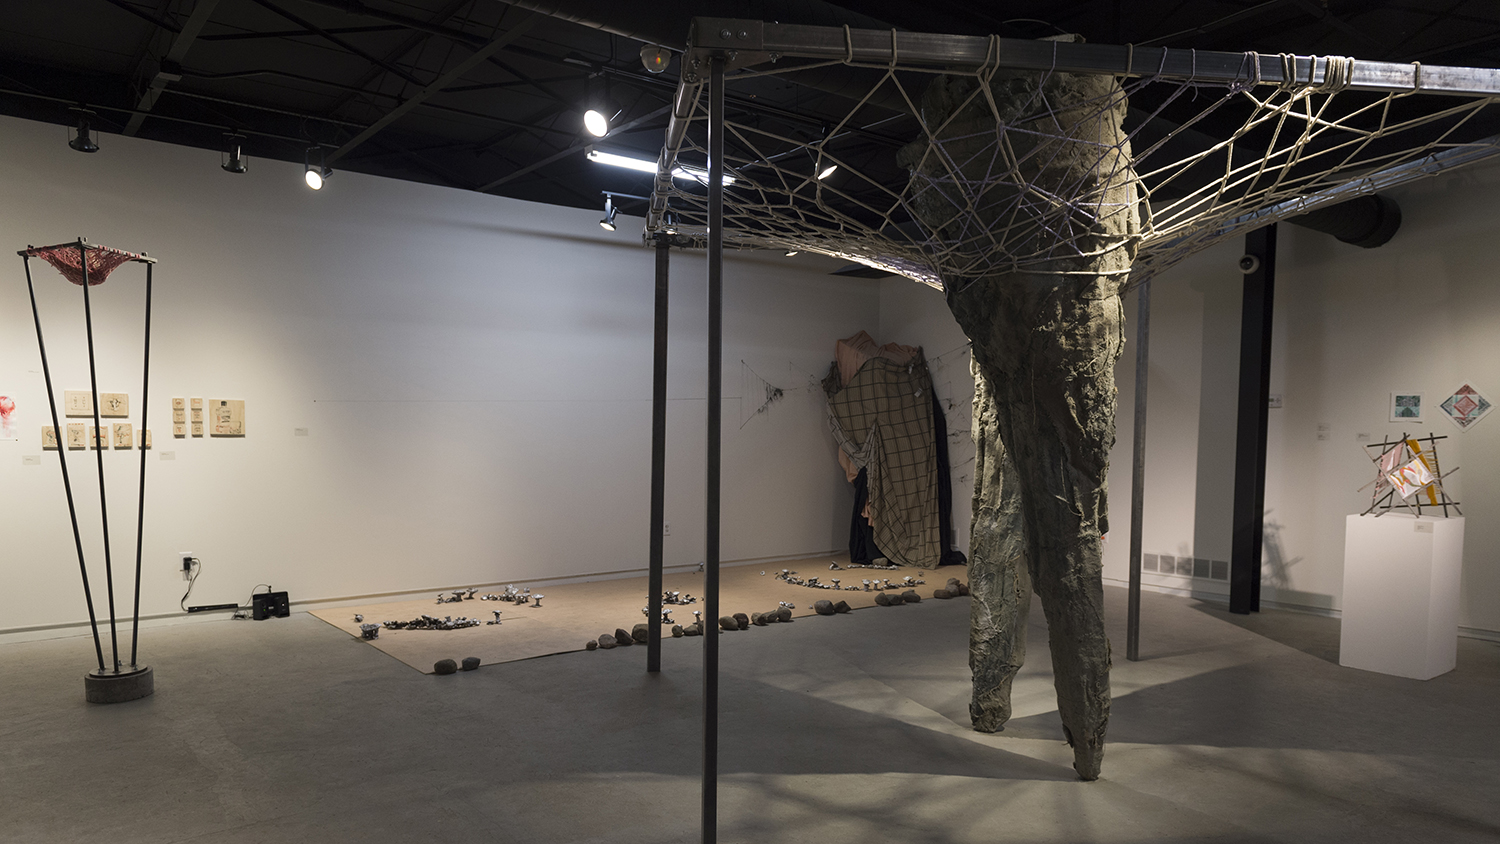 Sculptures by Holly Ferguson in RIT's old Gallery r.